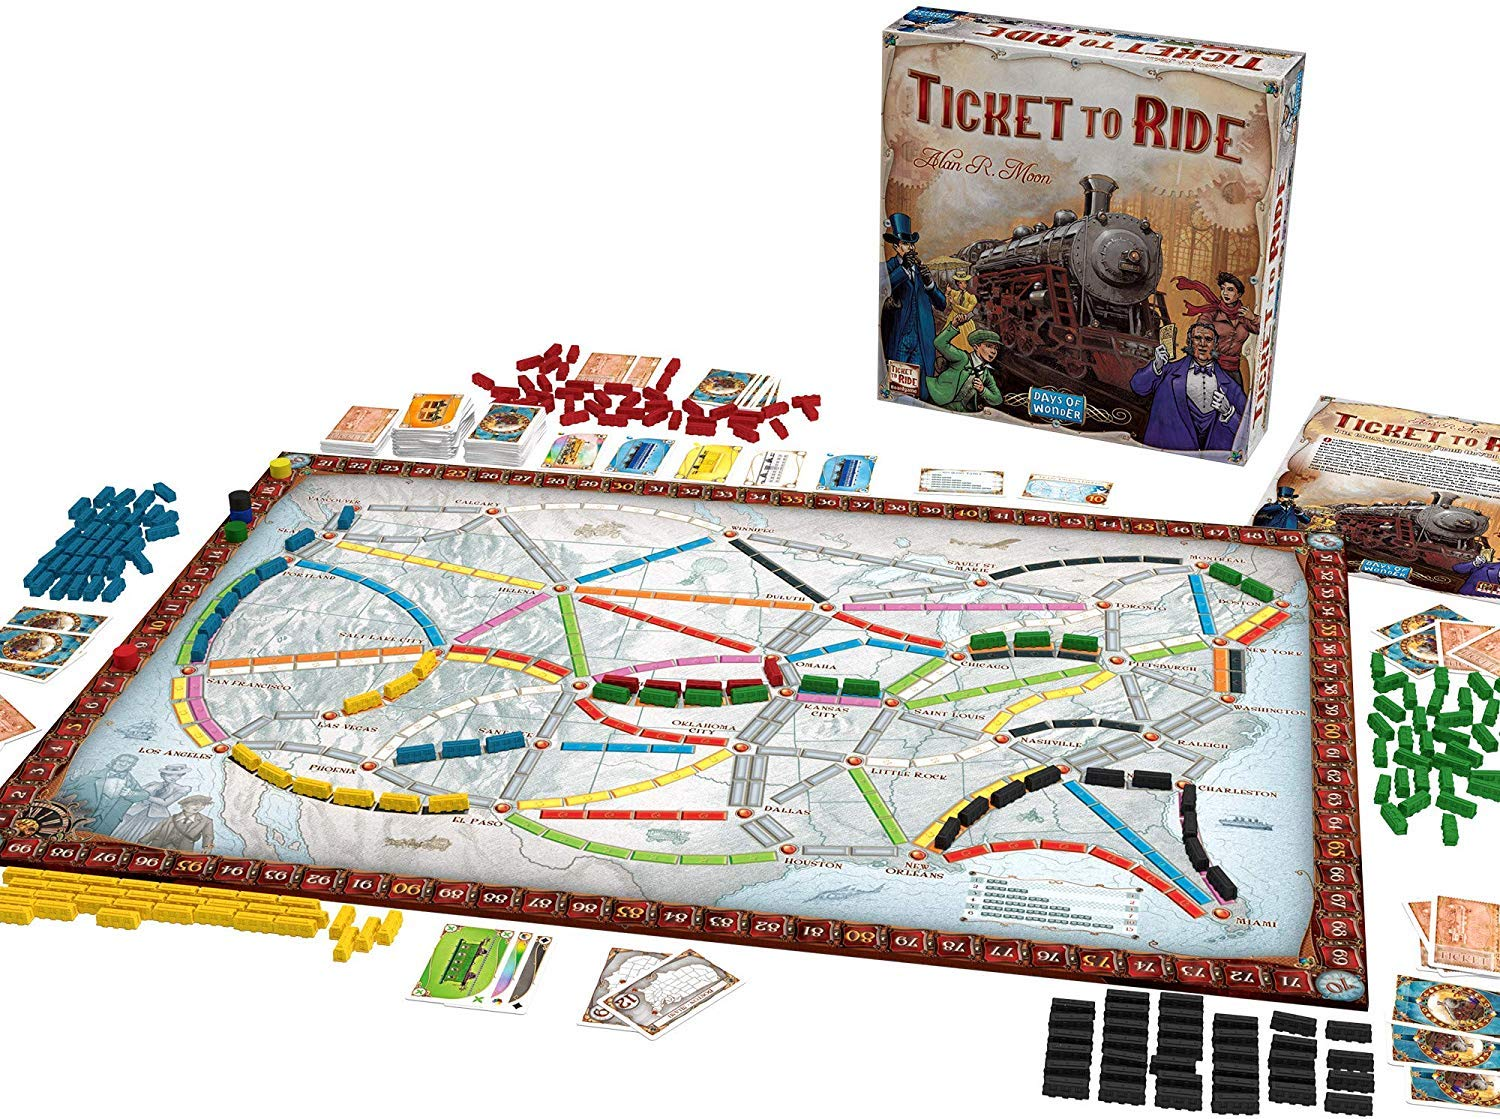 Board game ticket to ride laid out with all the pieces.